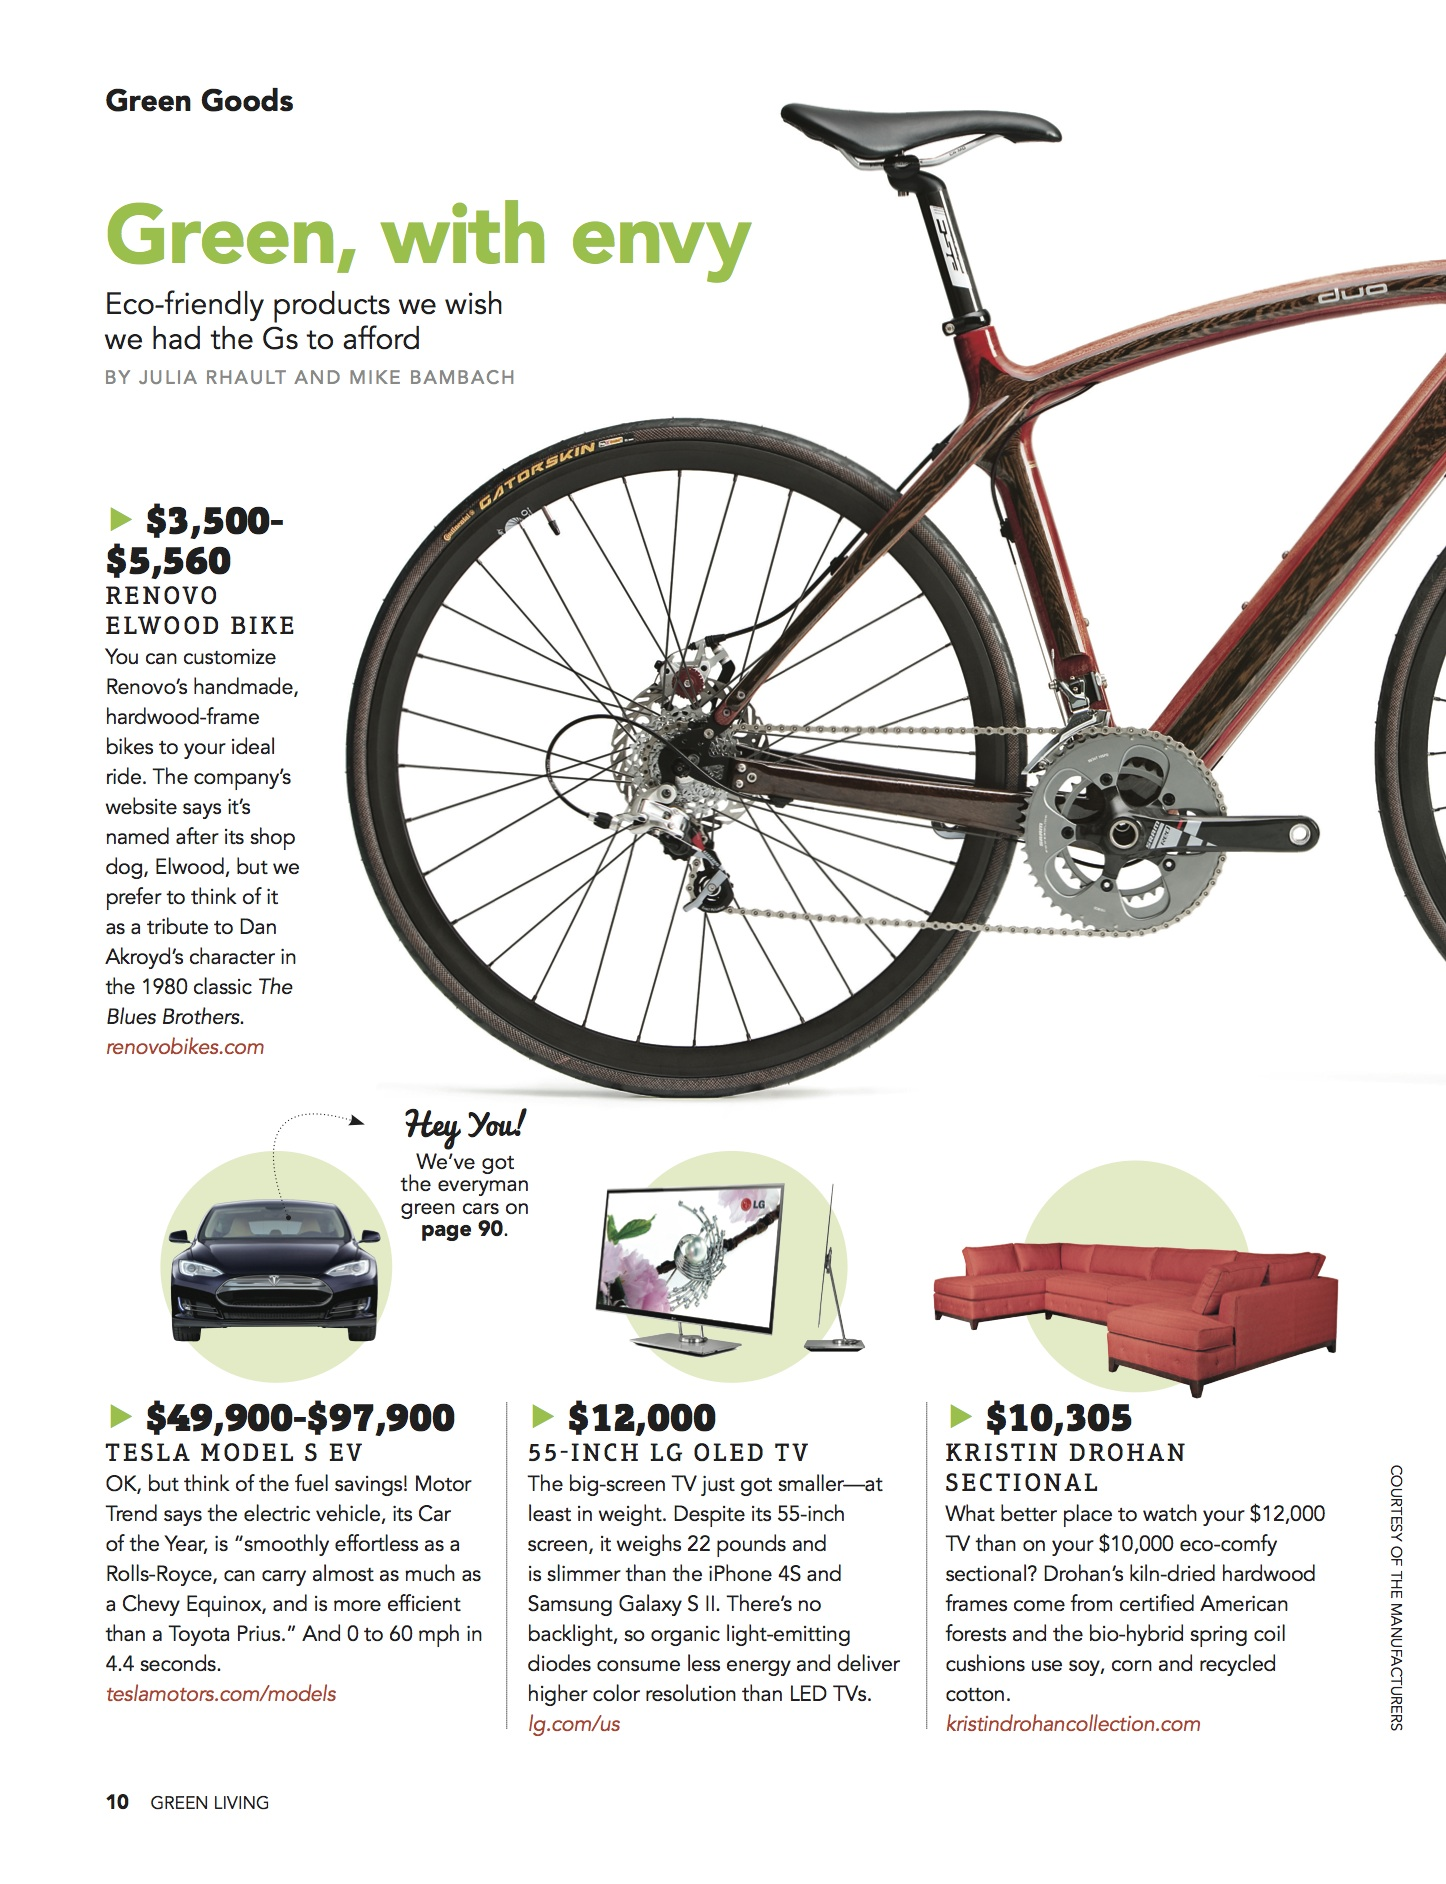 GREEN LIVING_page10 Renovo feature